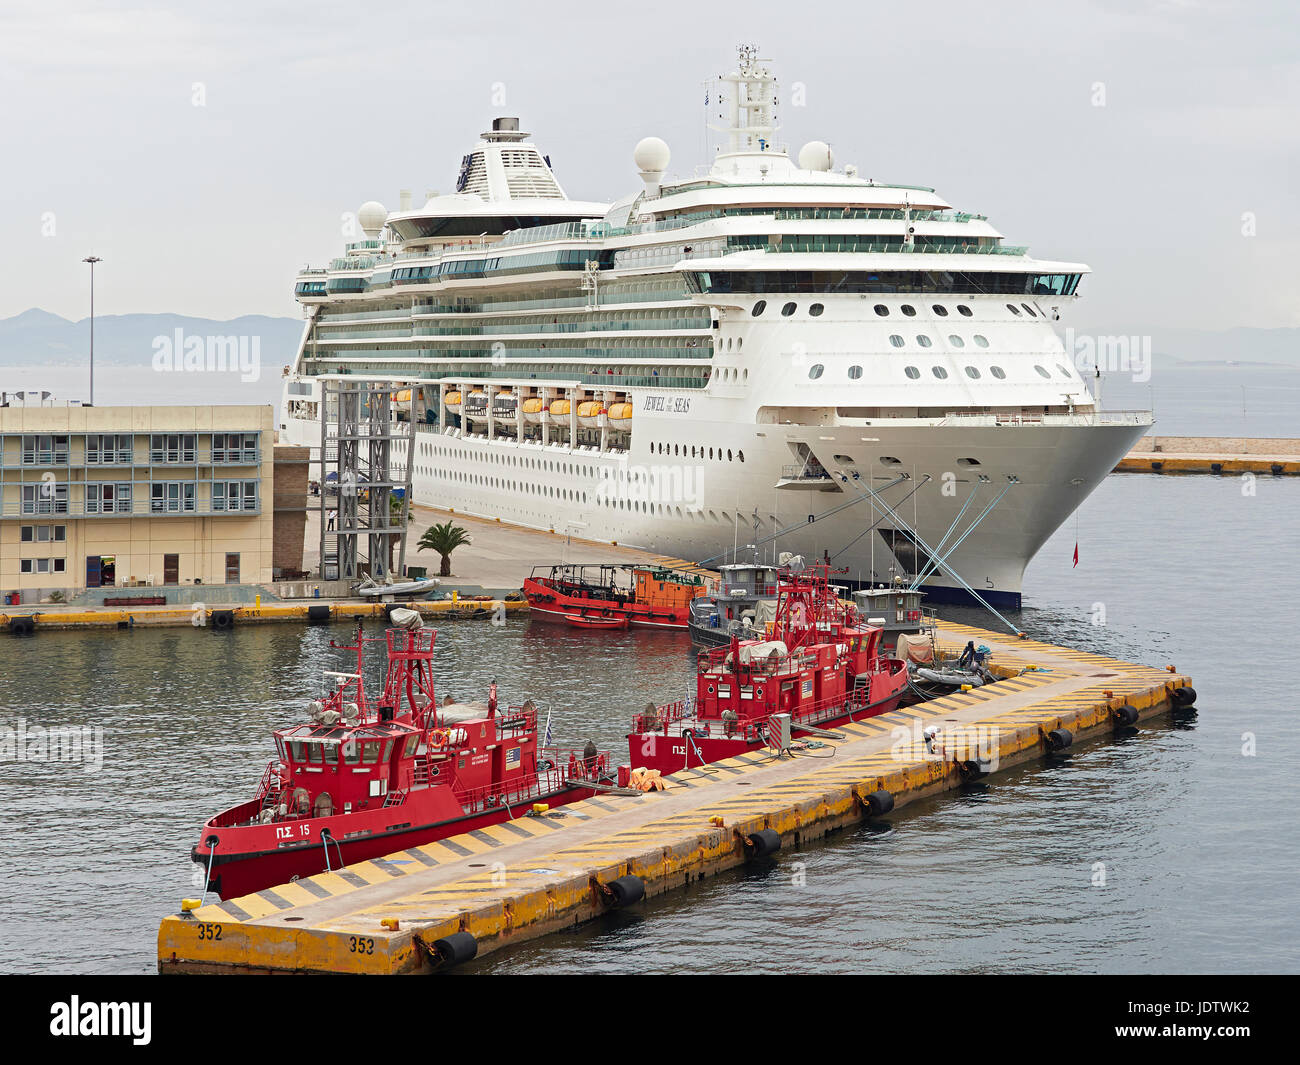 Port of Piraeus the port for Athens Greece and the Royal Caribbean cruise ship the Jewel of the Seas - Stock Image